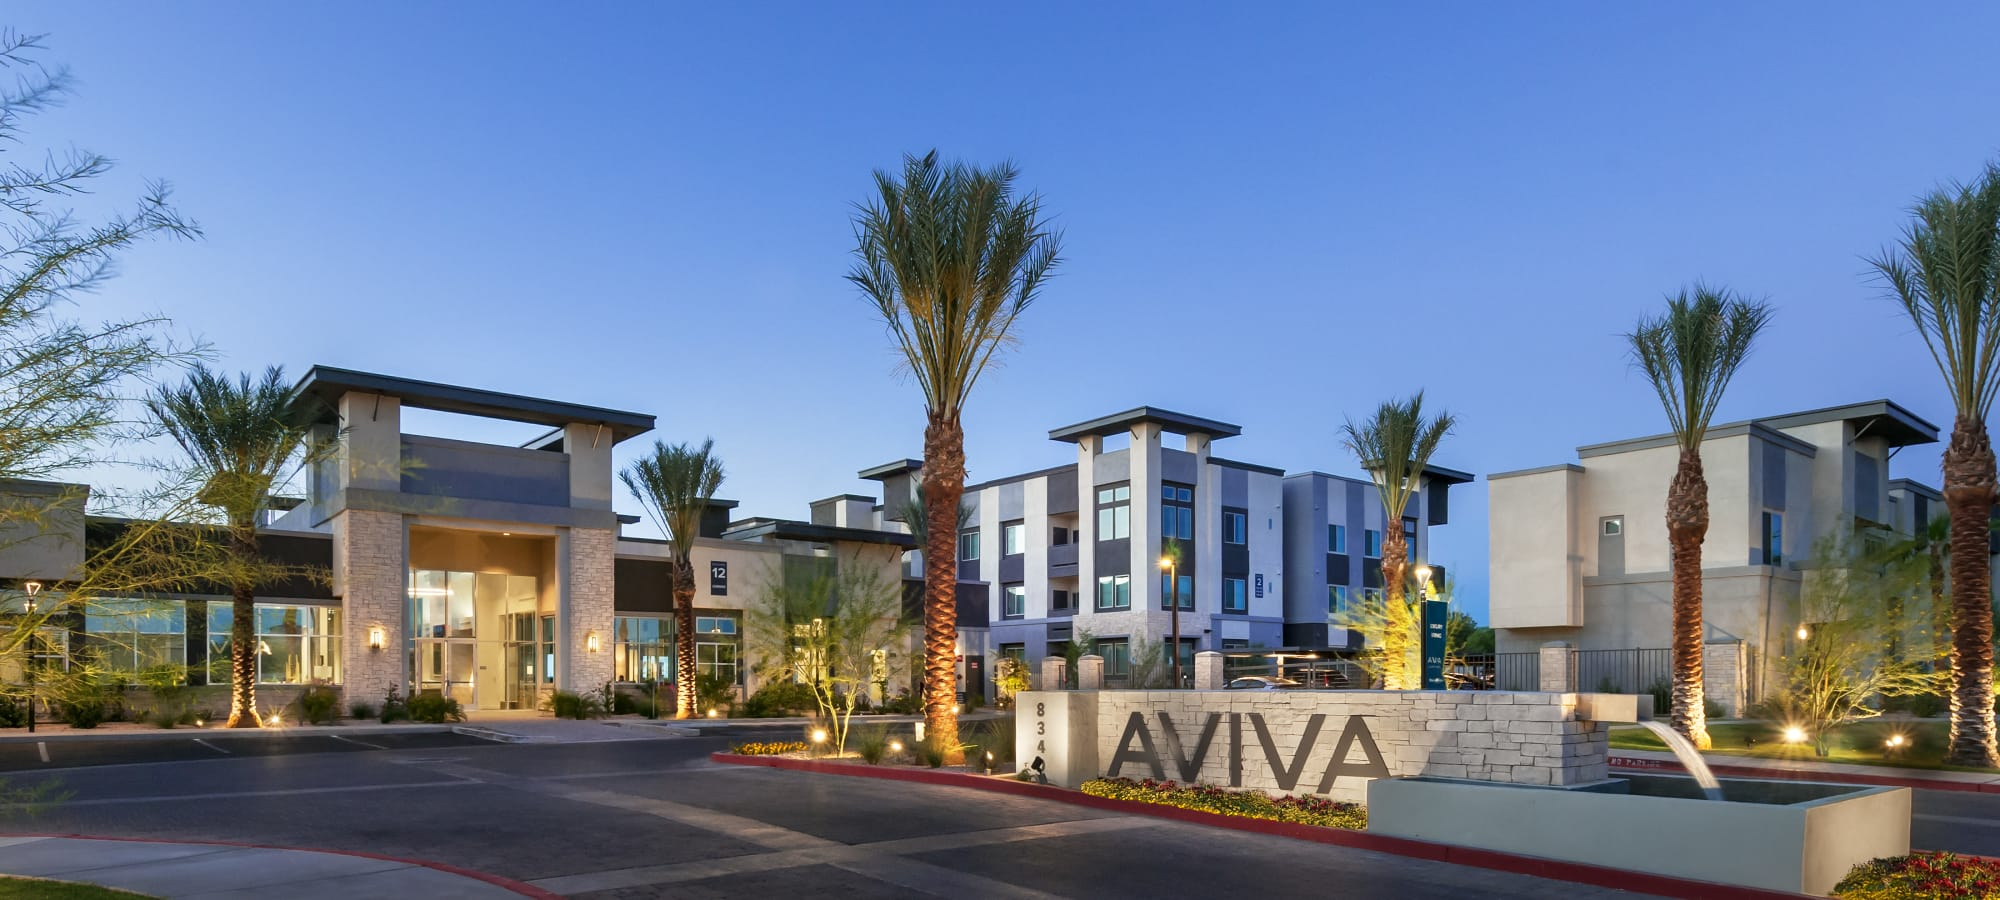 Entrance sign at Aviva in Mesa, Arizona